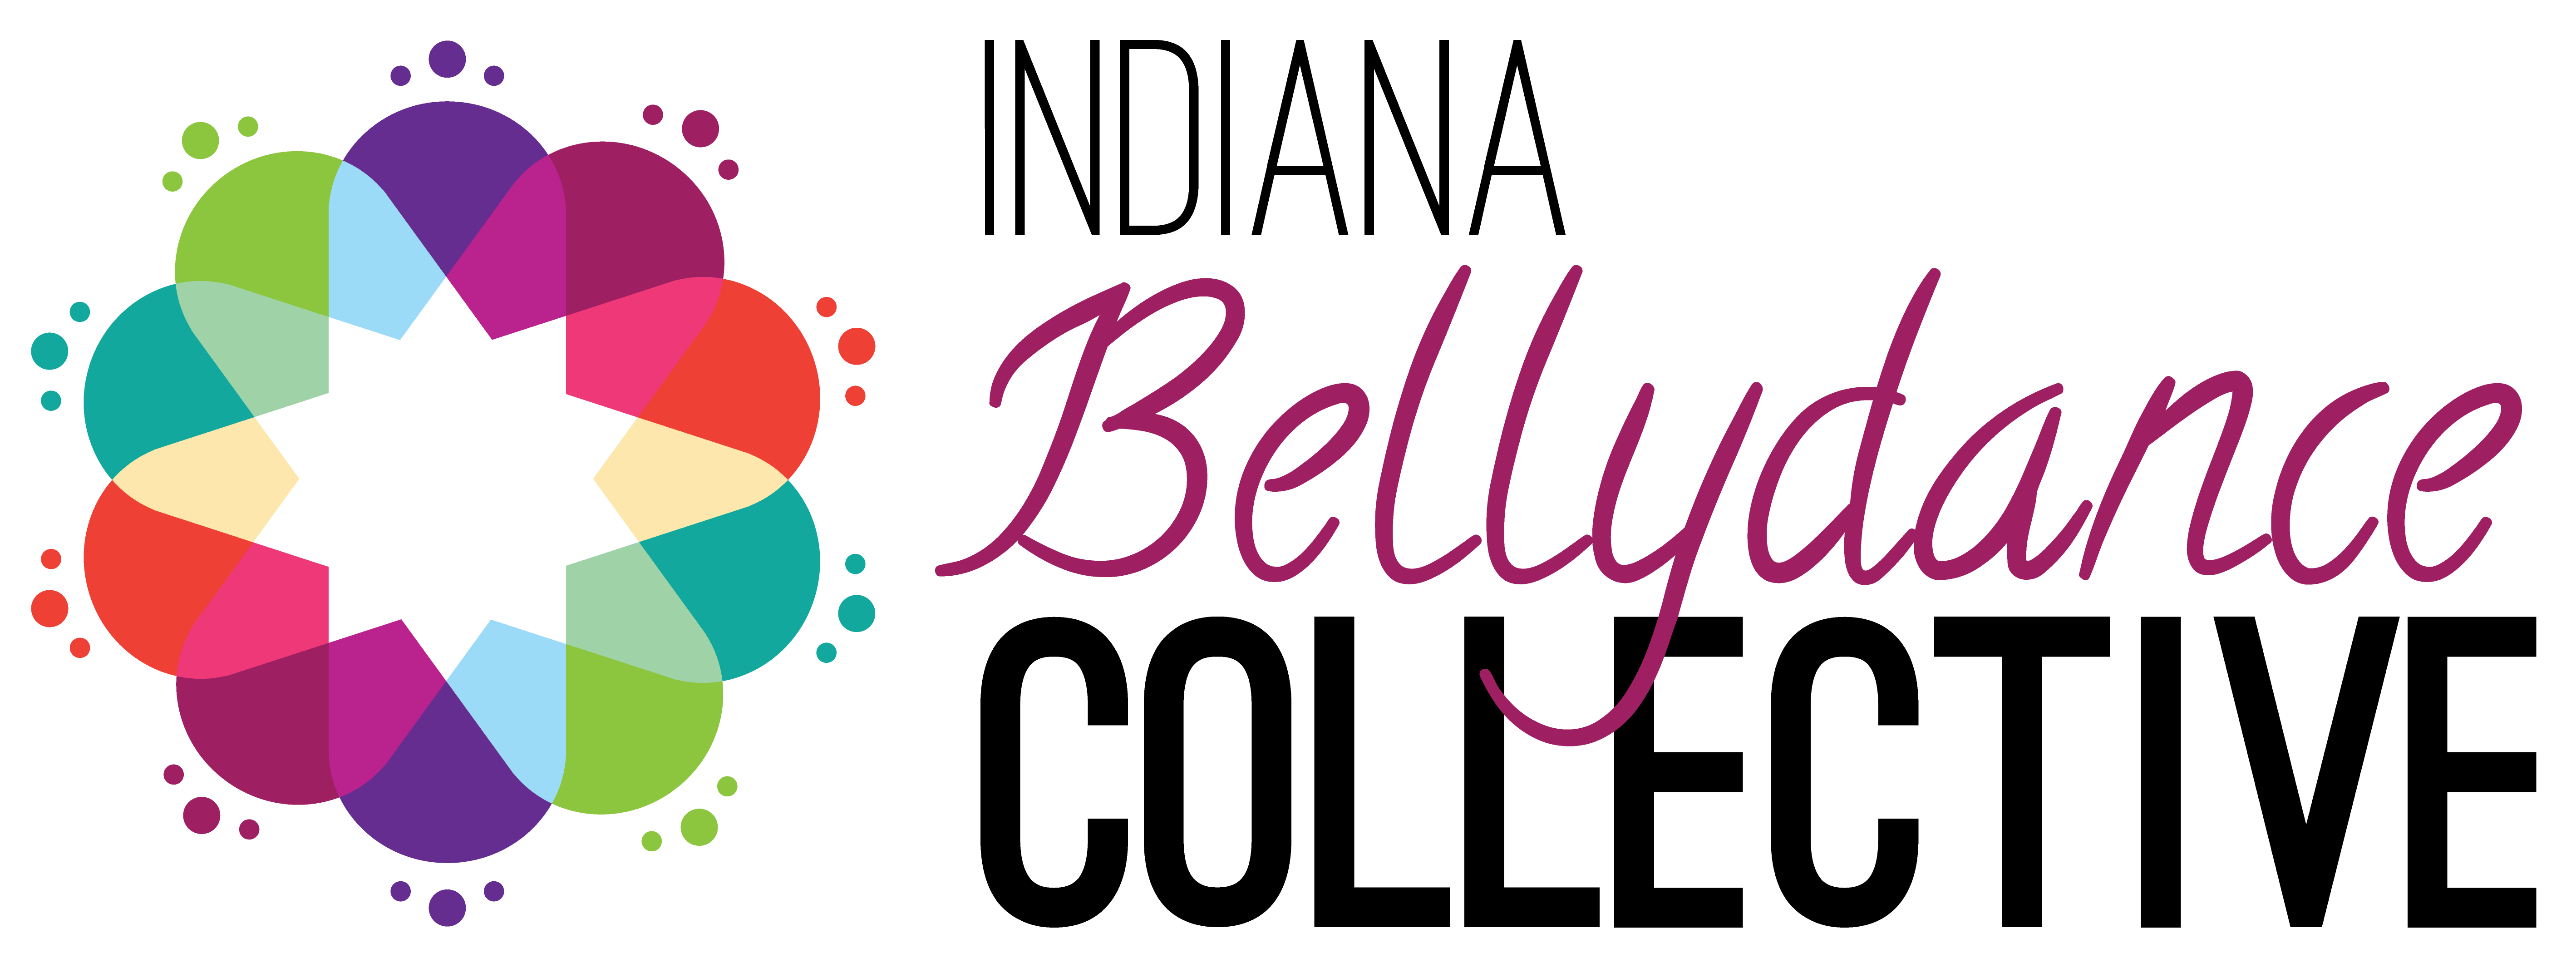 Indiana Belly Dance Collective